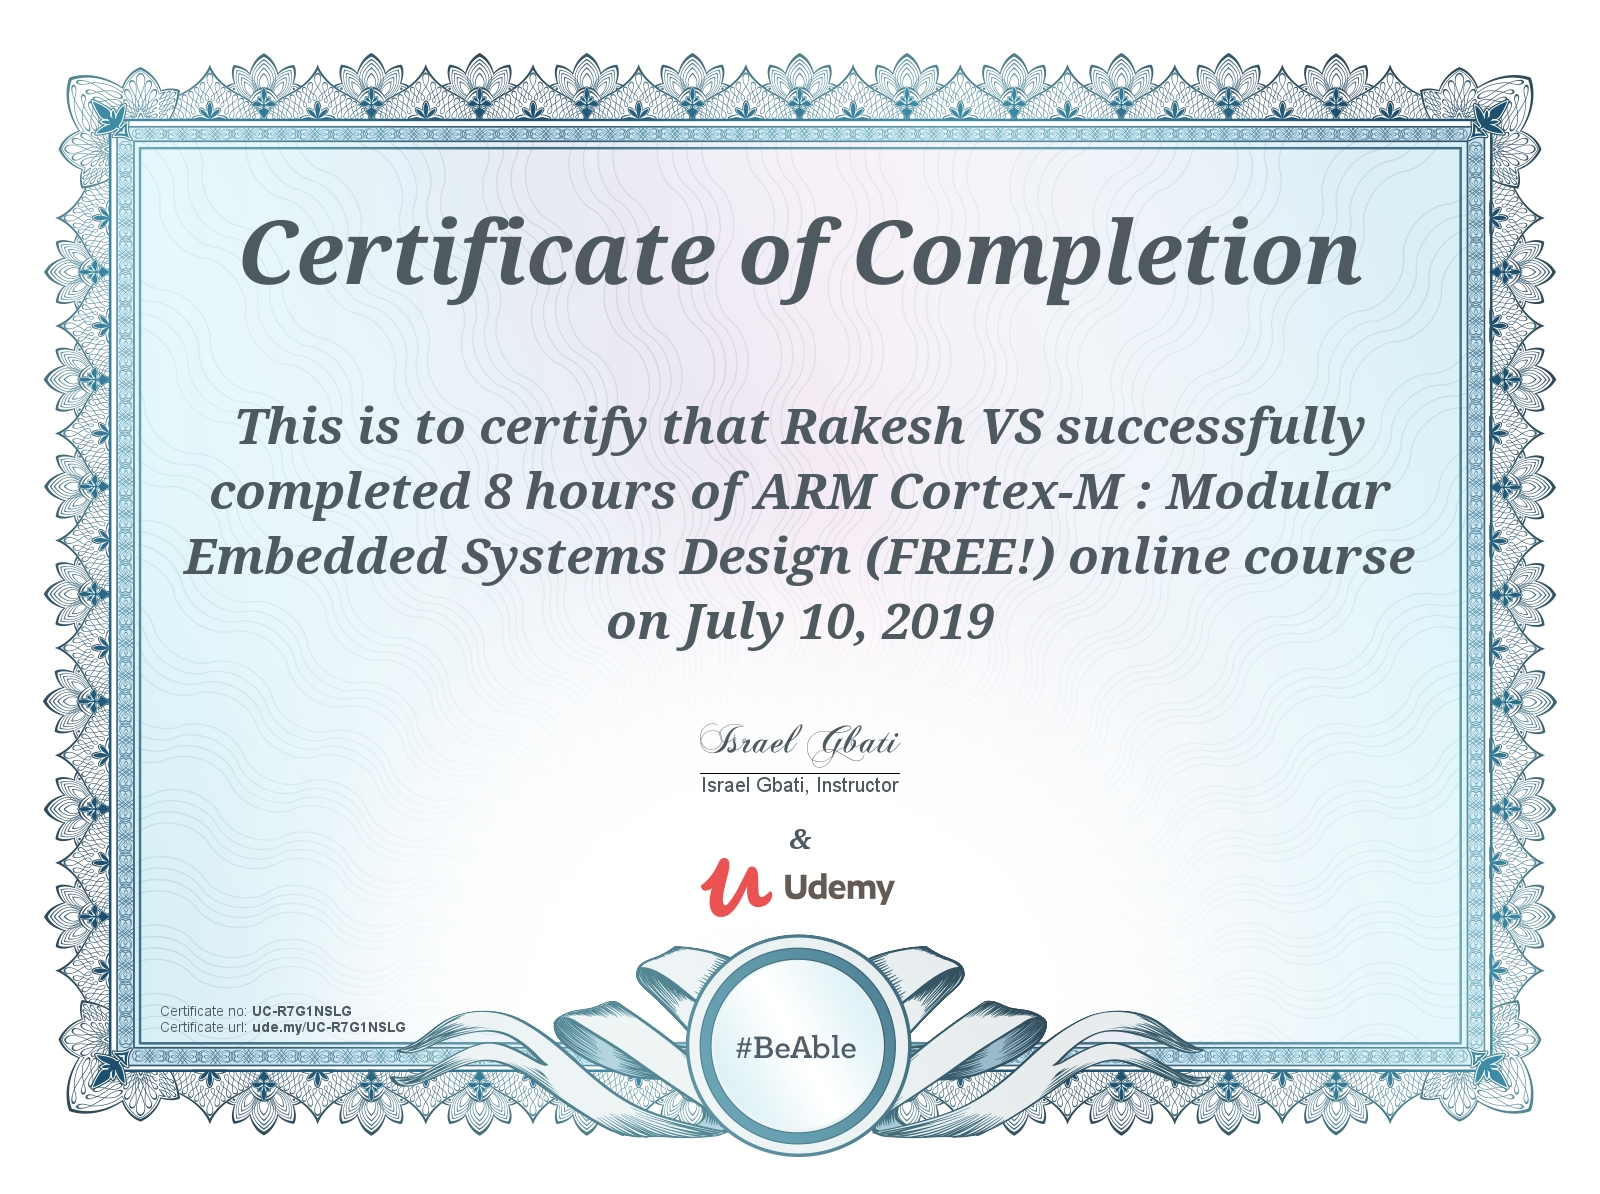 ECE faculty completes online course on ARM Cortex-M   News